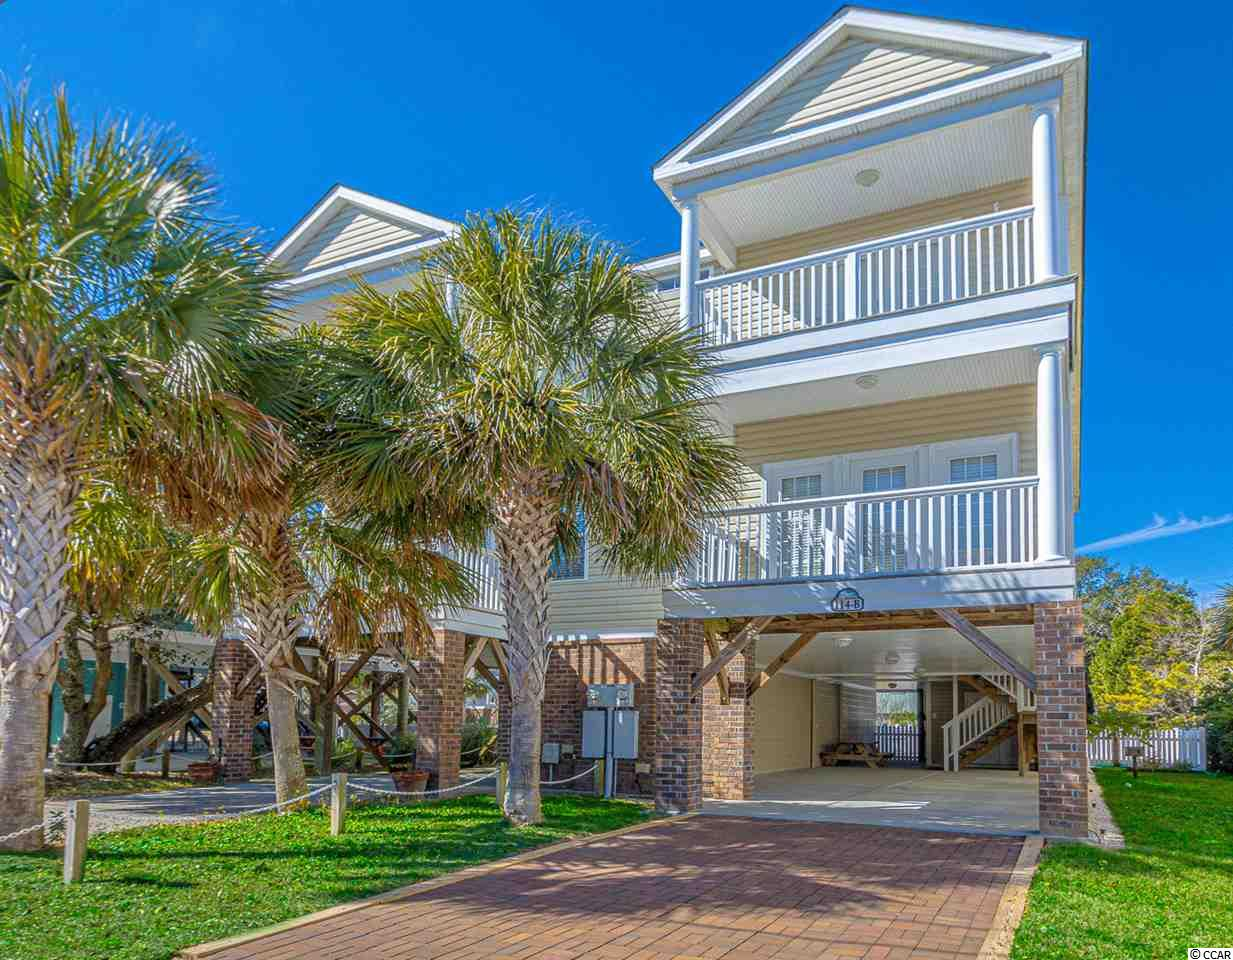 Steps to the Atlantic and all of the entertainment Surfside Beach has to offer!  This 5 bedroom 4.5 bath home has an open concept floor plan and its own private pool.  Large tiled floors on the first floor with a large breakfast bar and spacious kitchen.  A second master bedroom with private porch overlooking the pool completes the downstairs.  Upstairs are 4 spacious bedrooms and master suite with private baths.  Outside, enjoy your own private pool and outdoor shower with plenty of room for your golf cart.  This well maintained home has not been rented by the current owner but could be an excellent vacation rental.  Call me to schedule your showing today!